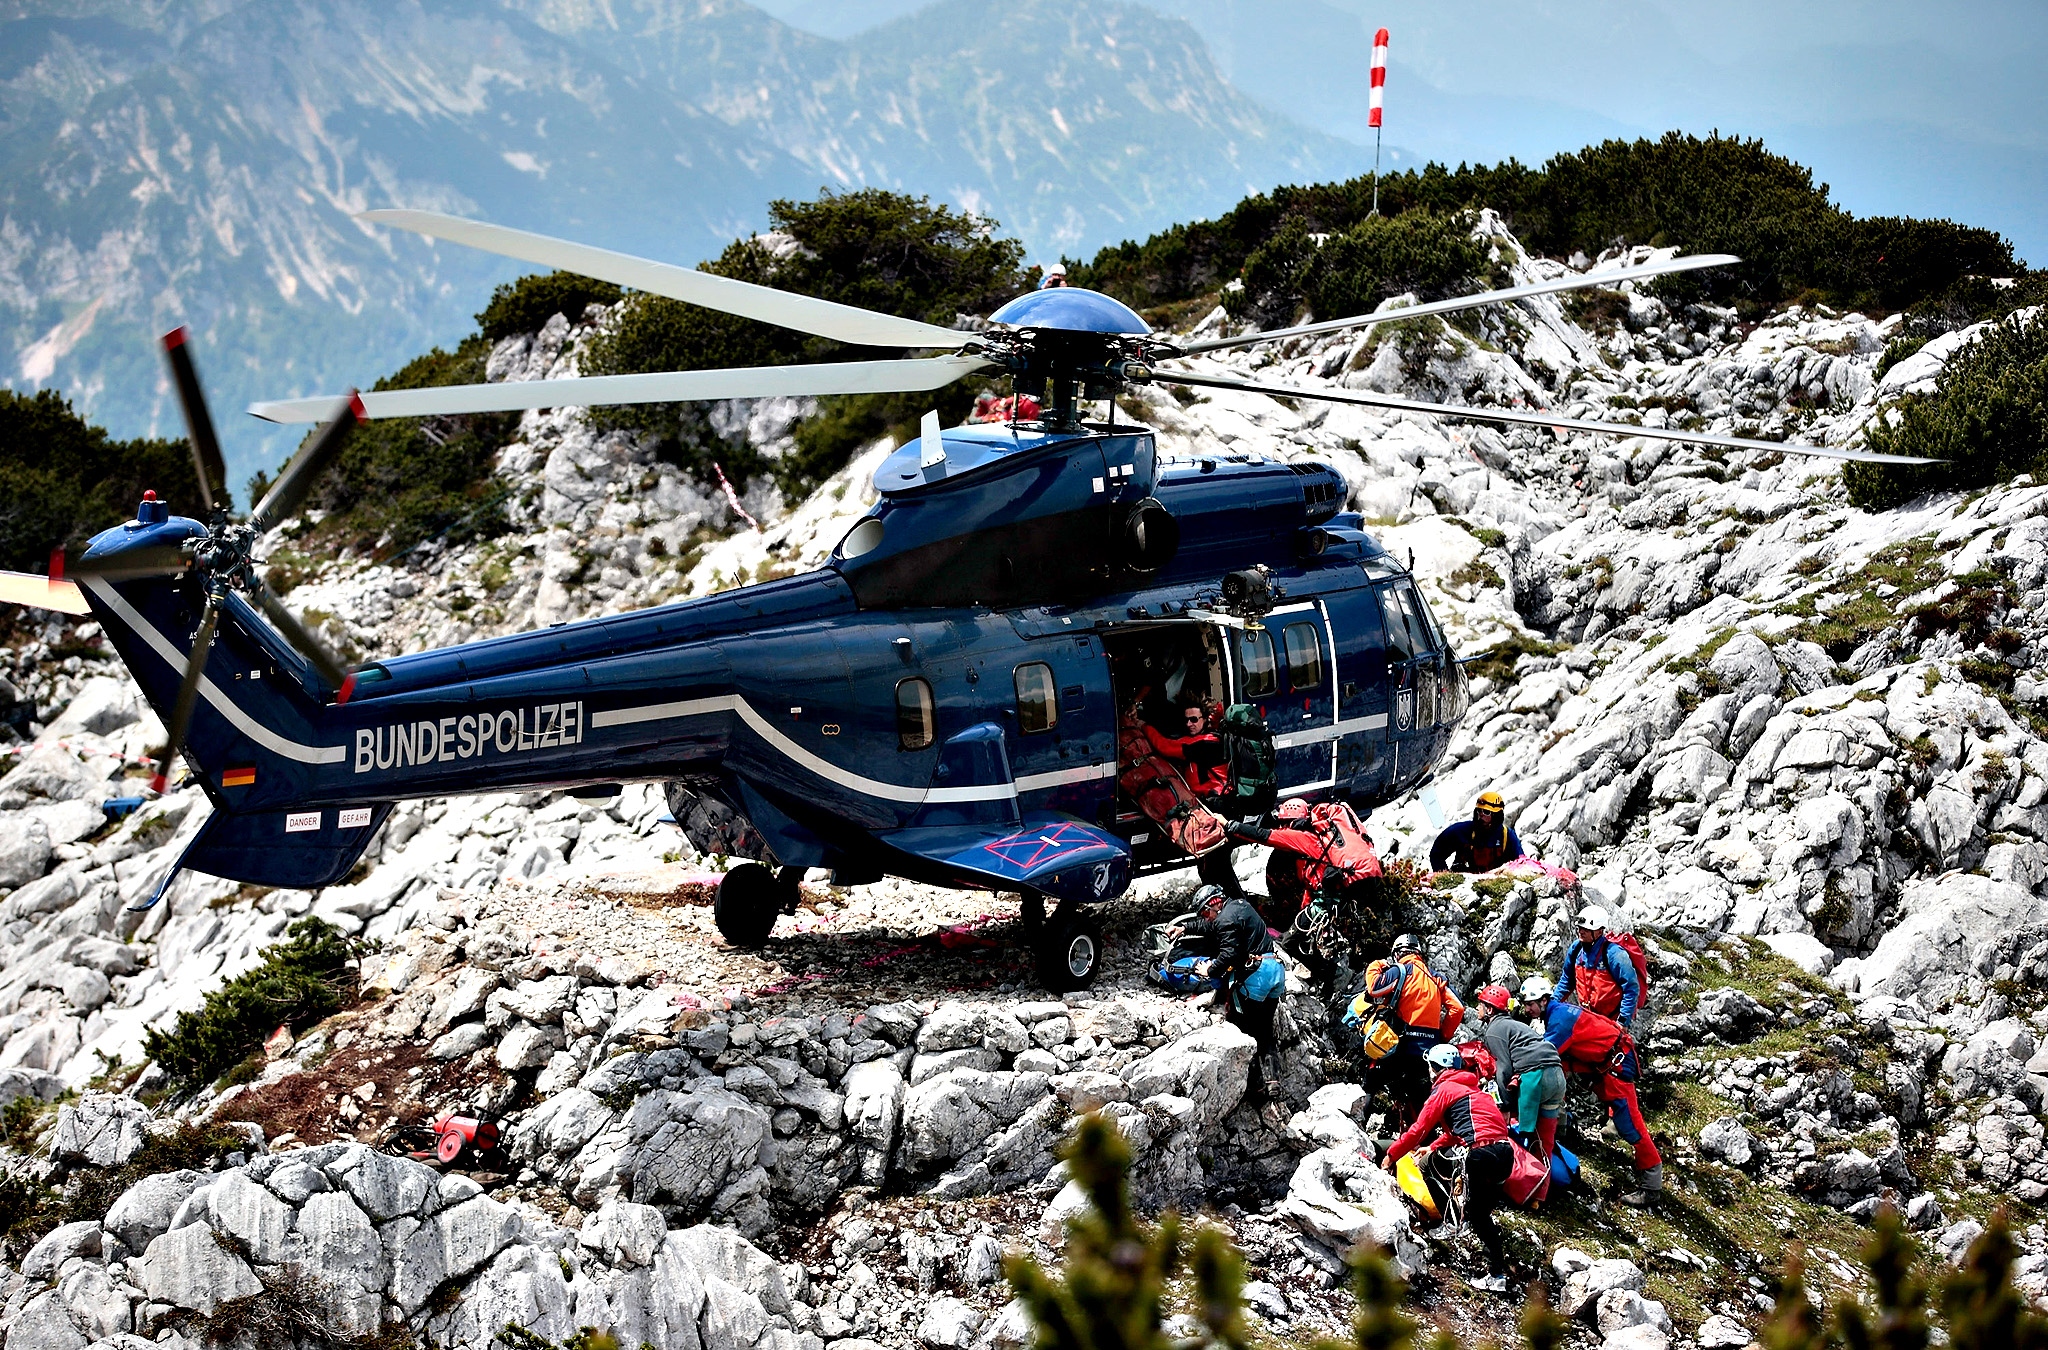 Rescue workers transport equipment into a police helicopter near the entrance to the Riesending vertical cave after the final phase of the transport of injured spelunker Johann Westhauser to the surface on June 19, 2014 near Marktschellenberg, Germany. Westhauser received a severe head injury when he was struck by rocks in the cave on June 8, 1,000 meters below the surface, and emergency crews from Germany, Italy and other nations have been working around the clock in an arduous effort to save him. Westhauser was among explorers who first discovered the cave, which is over 20 kilometers long, in 1995.